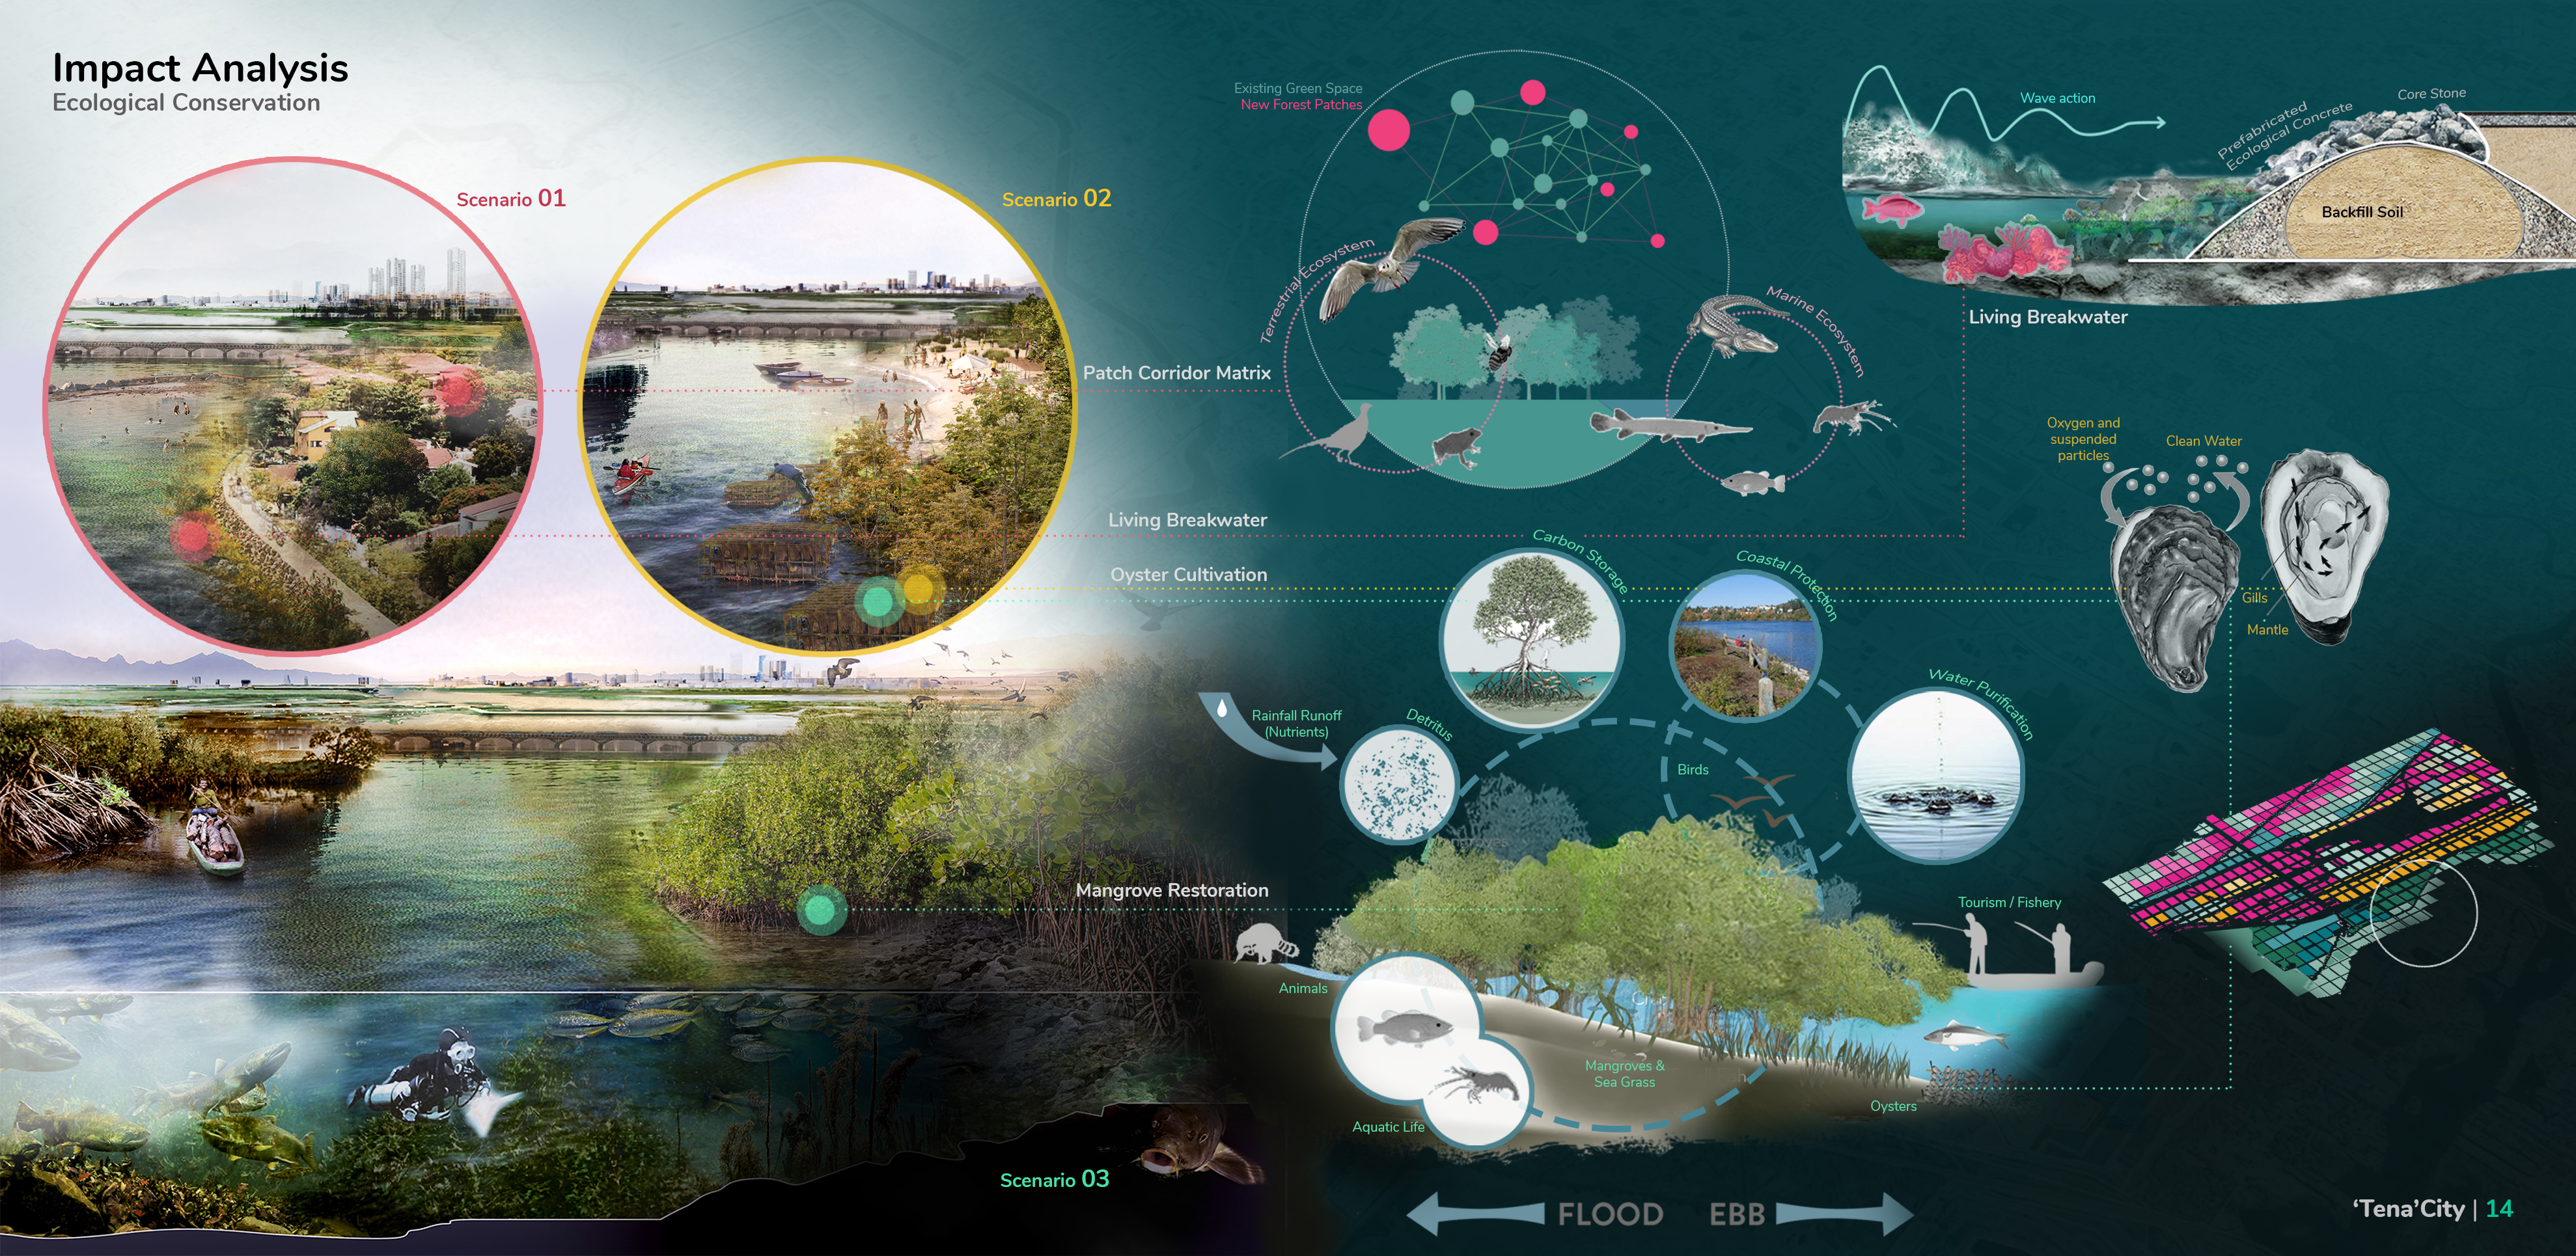 Impact Analysis for Ecological Conservation